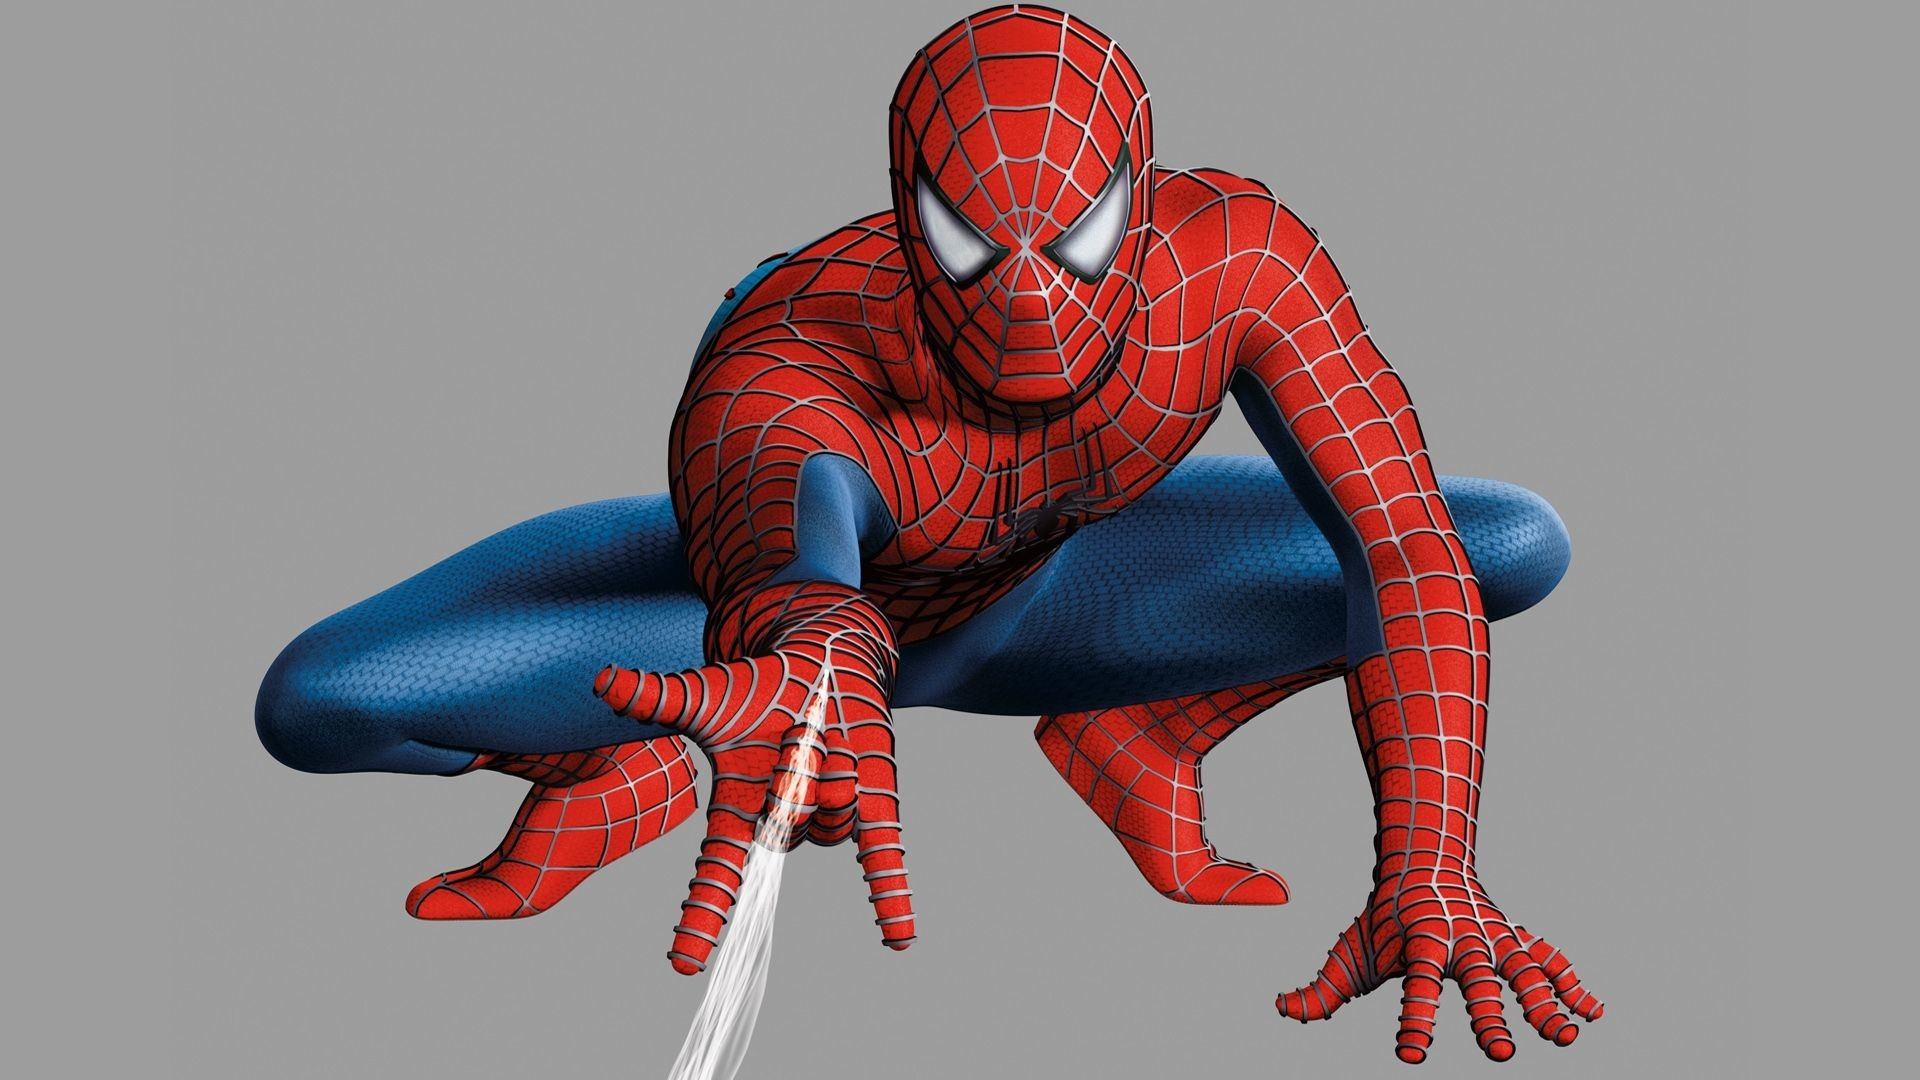 Free HD Spiderman wallpapers and Spiderman backgrounds in k,k HD Wallpapers  Of Spiderman 4 Wallpapers)